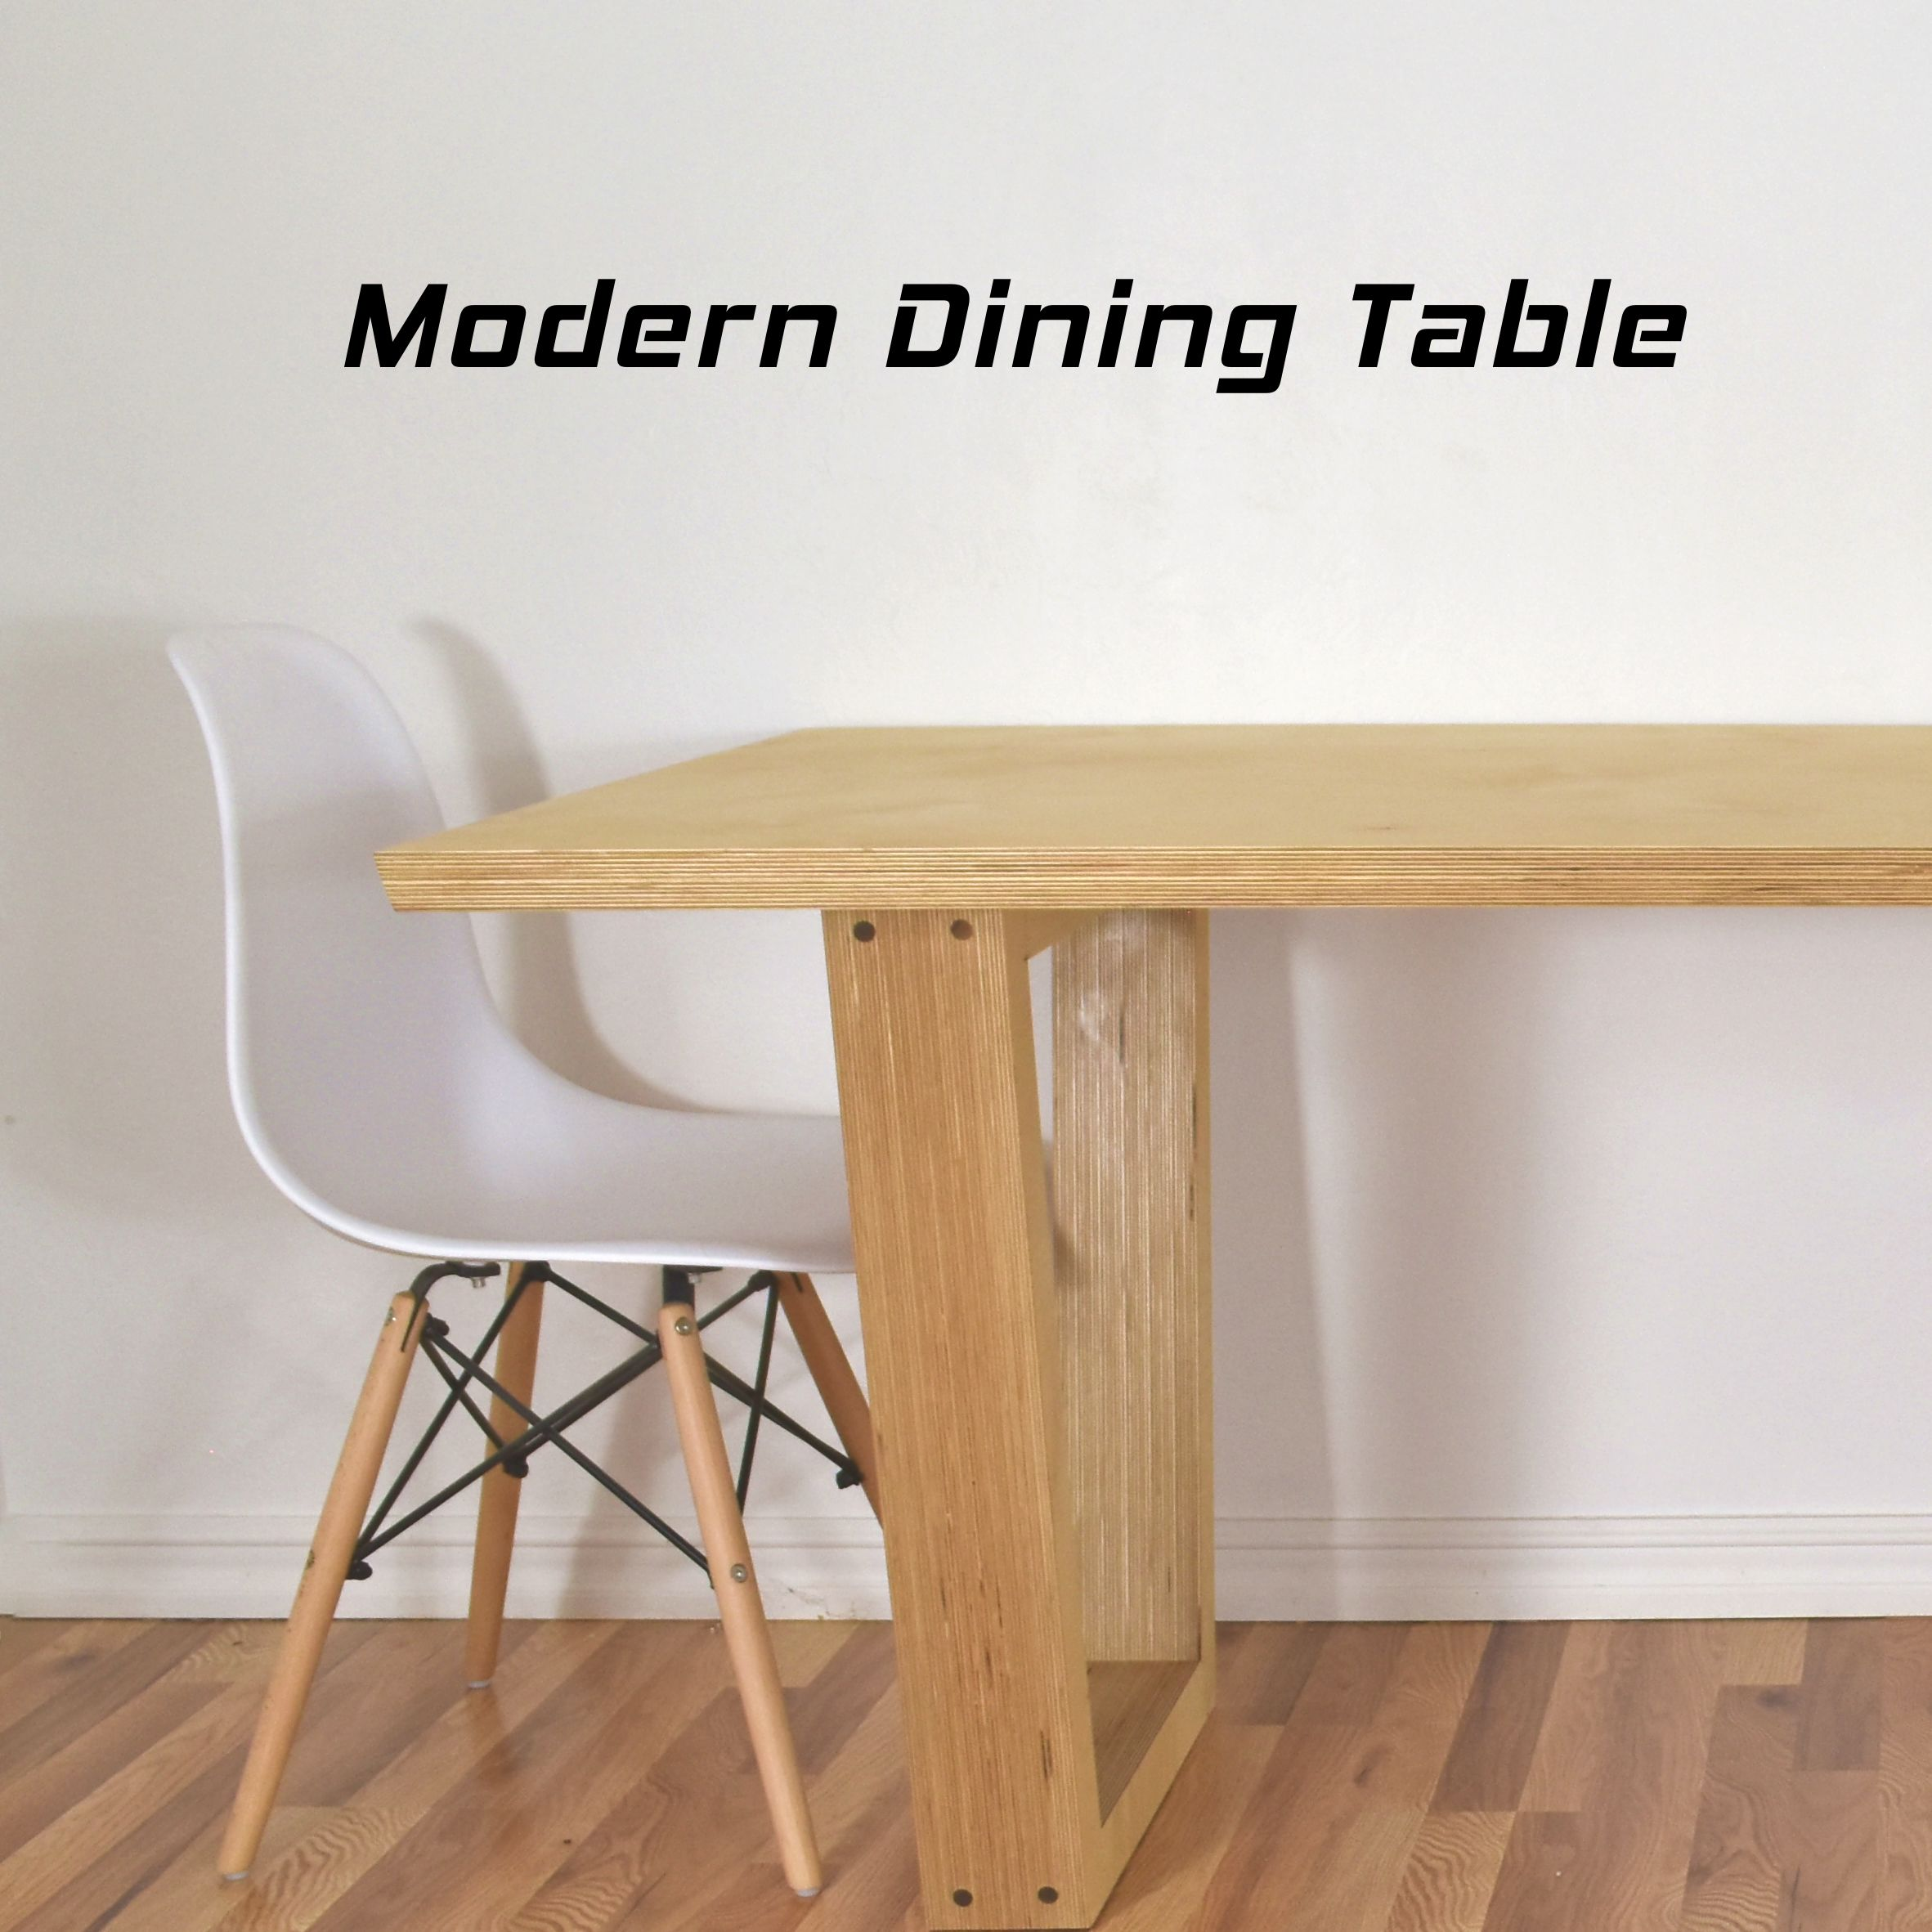 A modern dining table built from 3/4